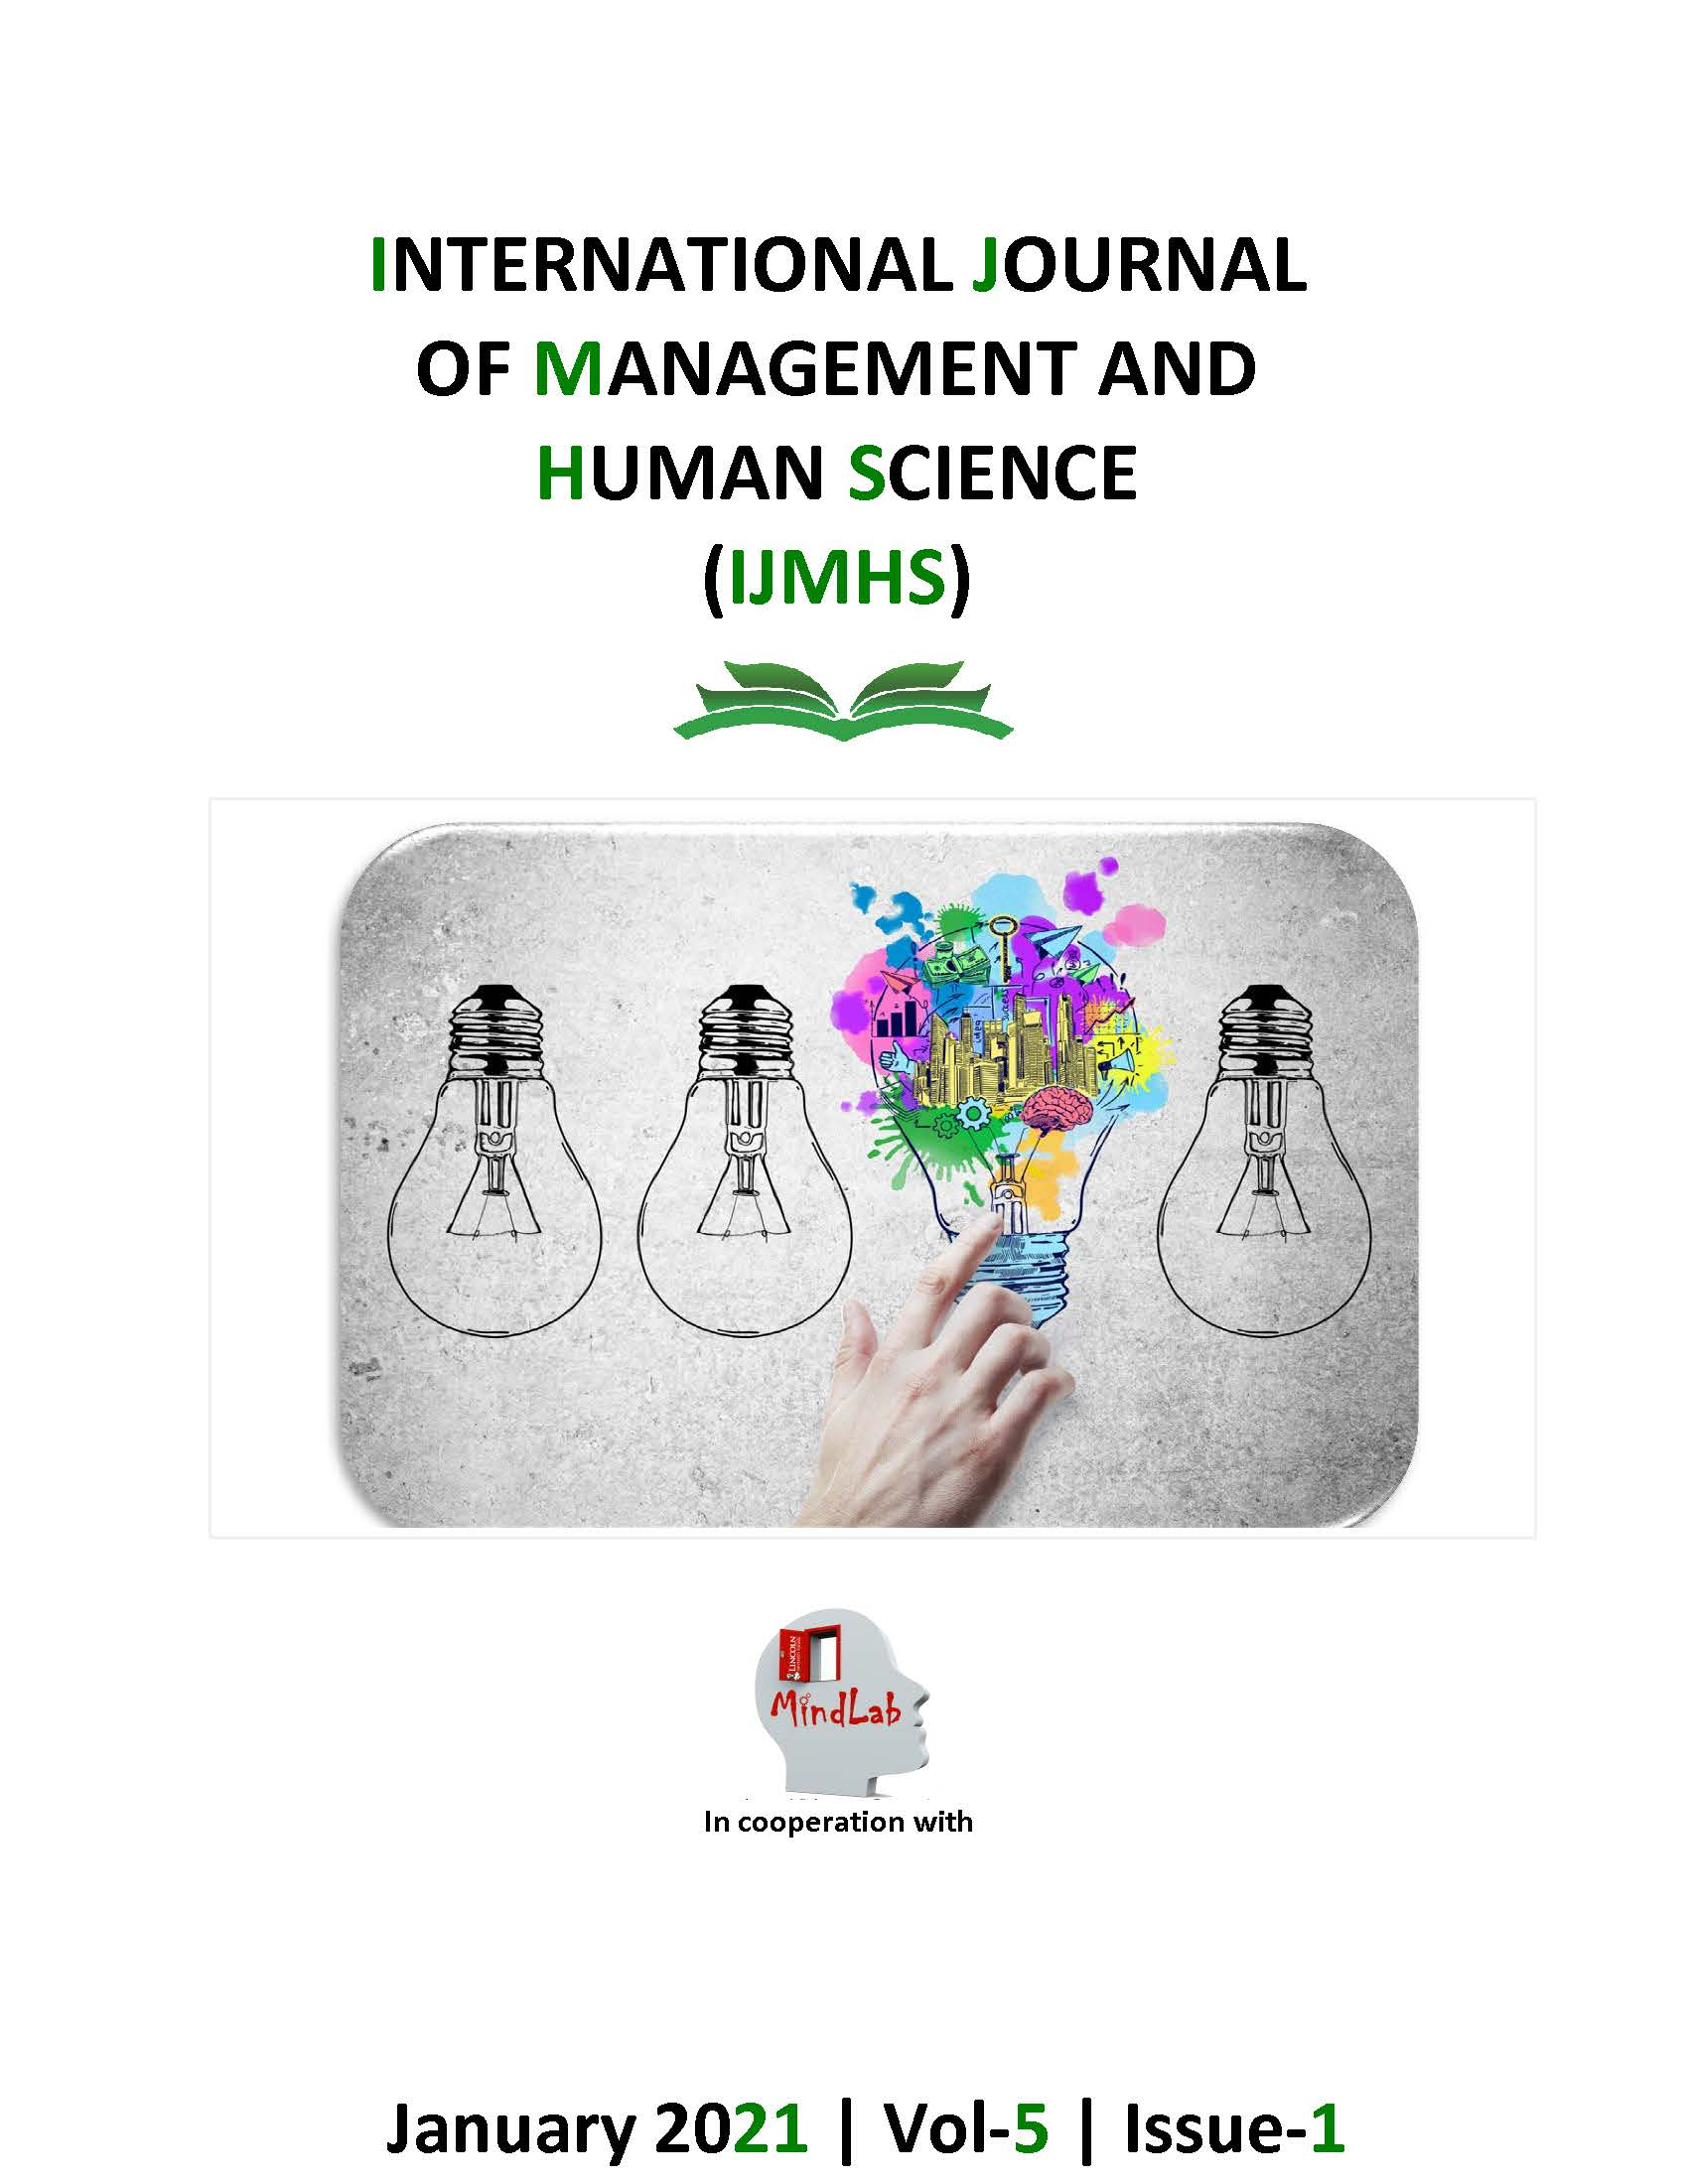 View Vol. 5 No. 1 (2021): International Journal of Management and Human Sciences (IJMHS)